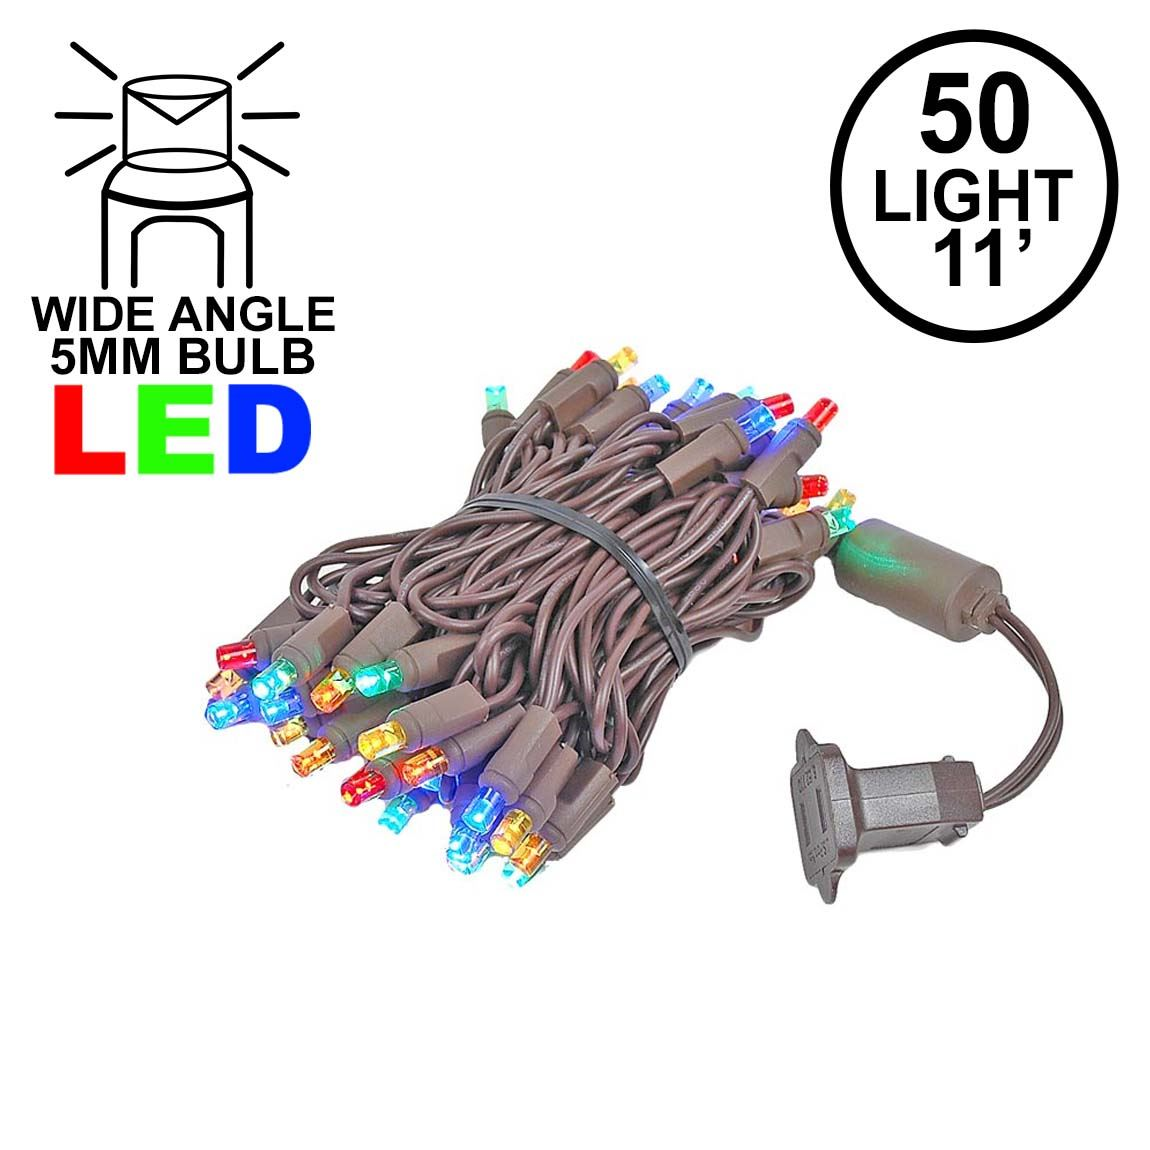 Picture of 50 LED Multi LED Christmas Lights 11' Long on Brown Wire